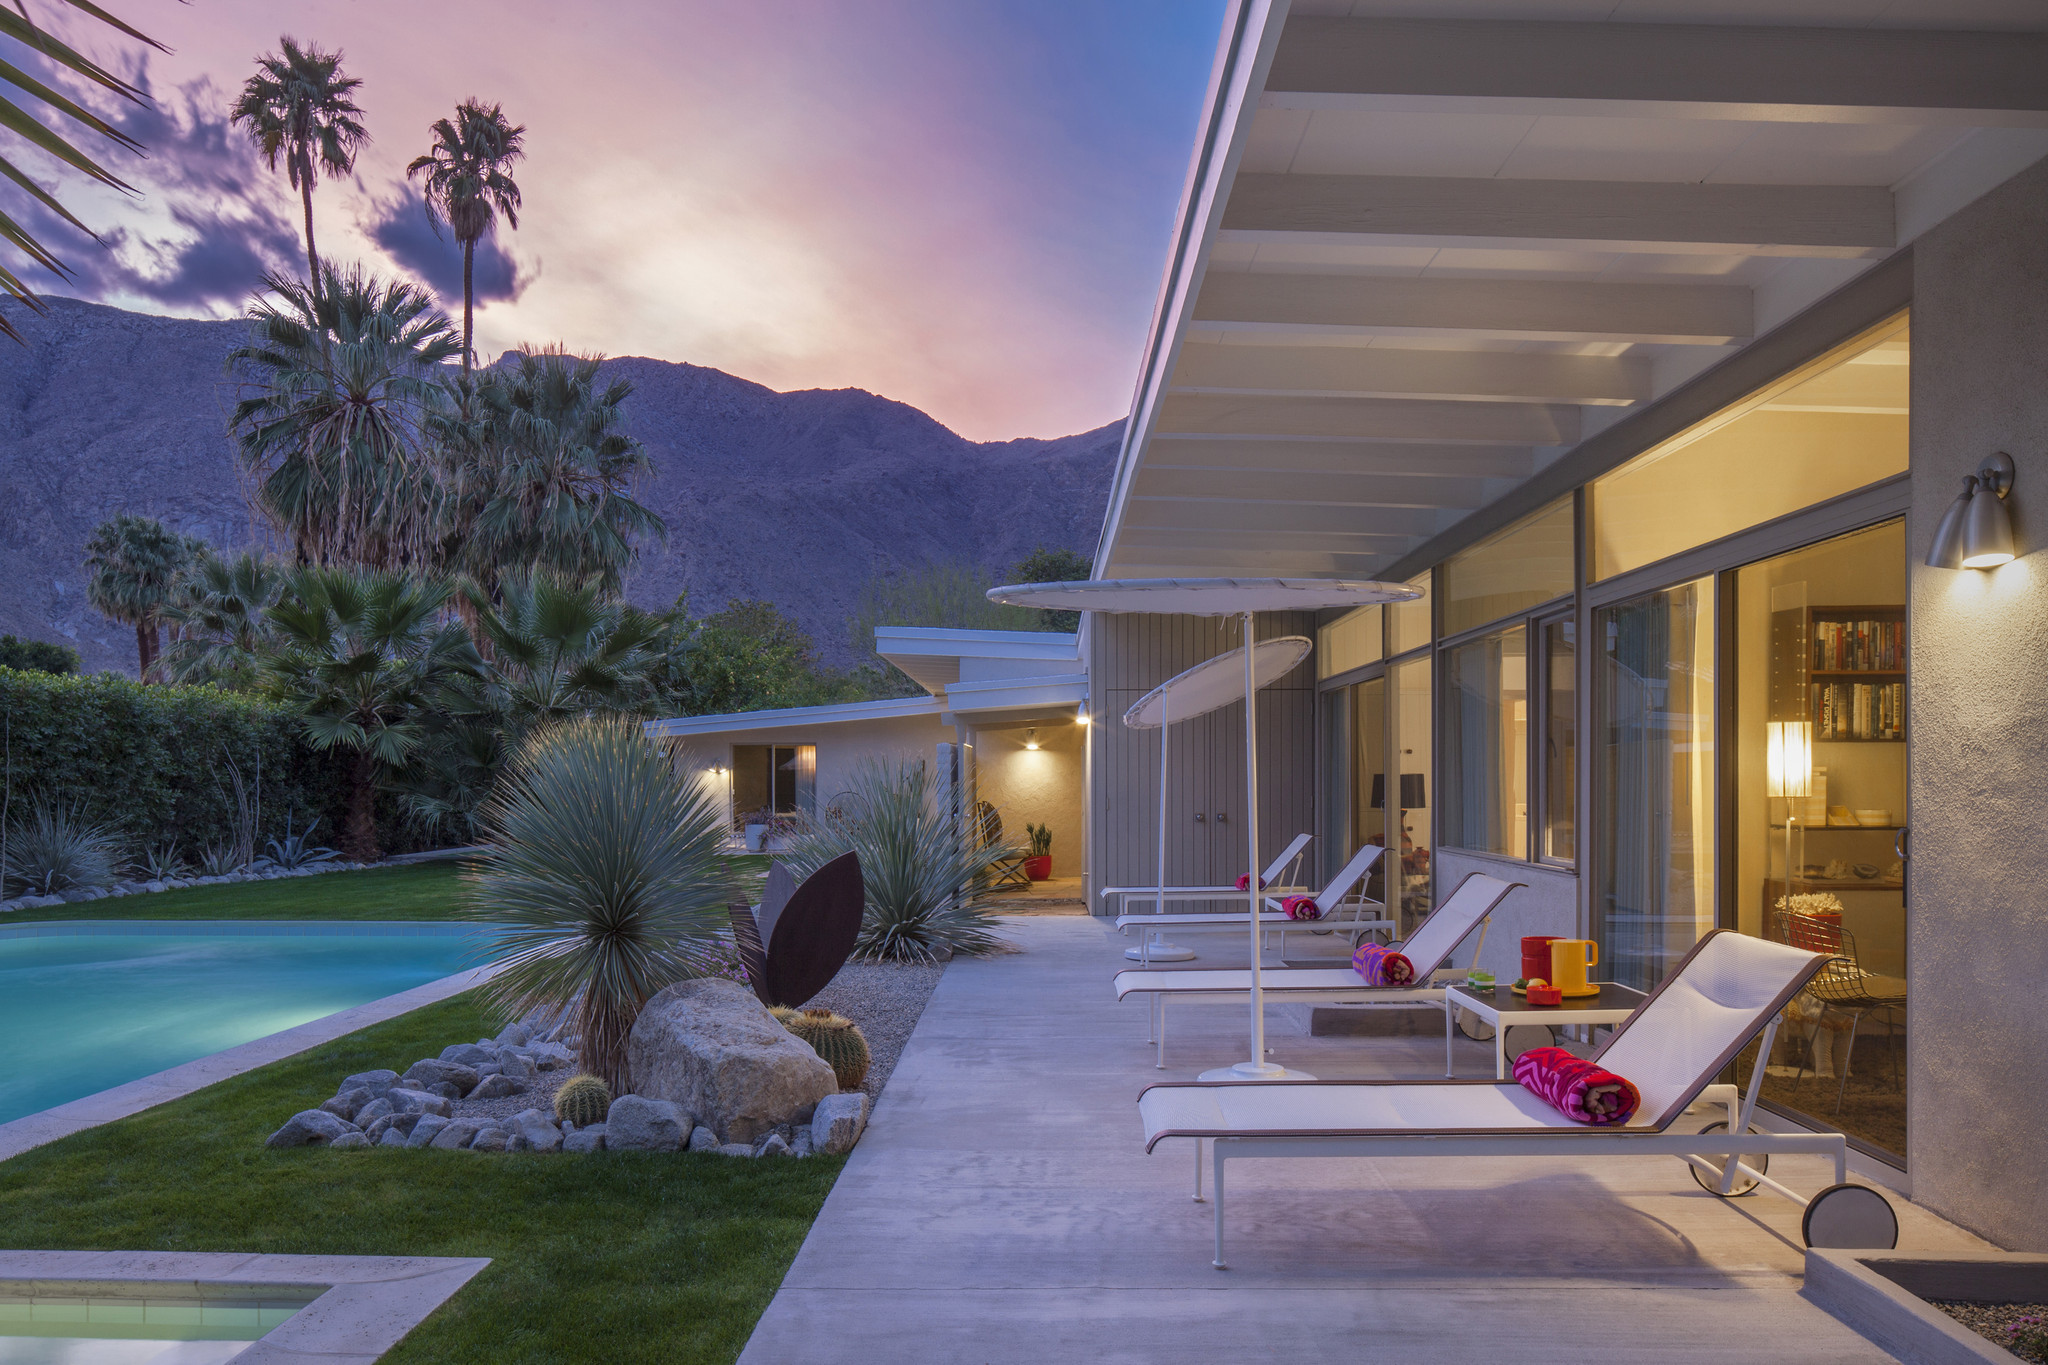 sleek donald wexler home in palm springs revealed beneath its